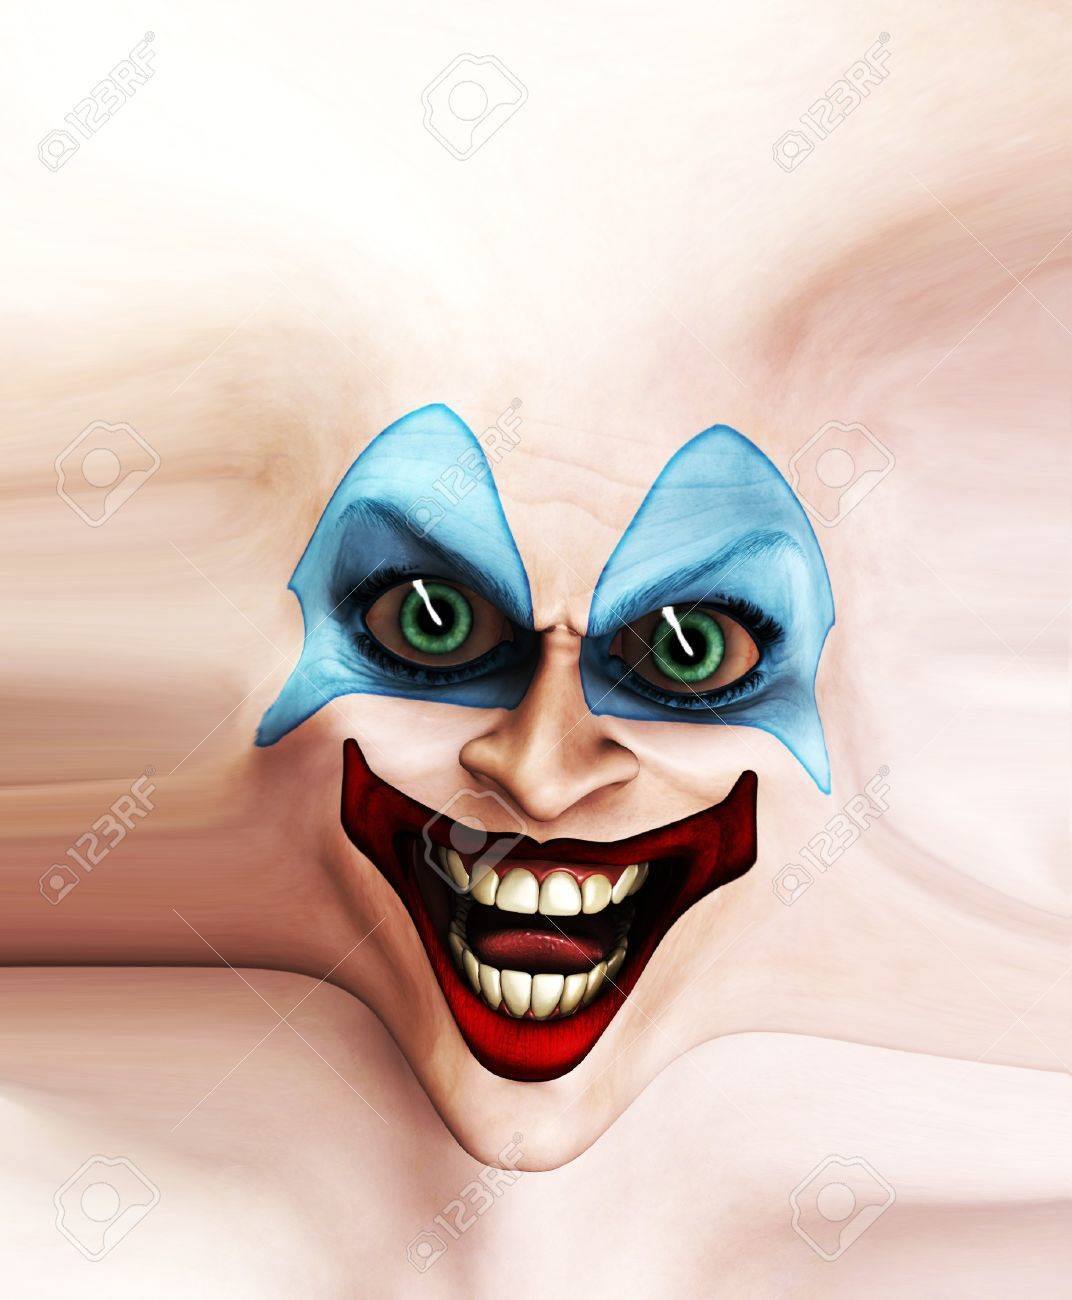 Very evil looking clown face on stretched skin. Stock Photo - 7768249